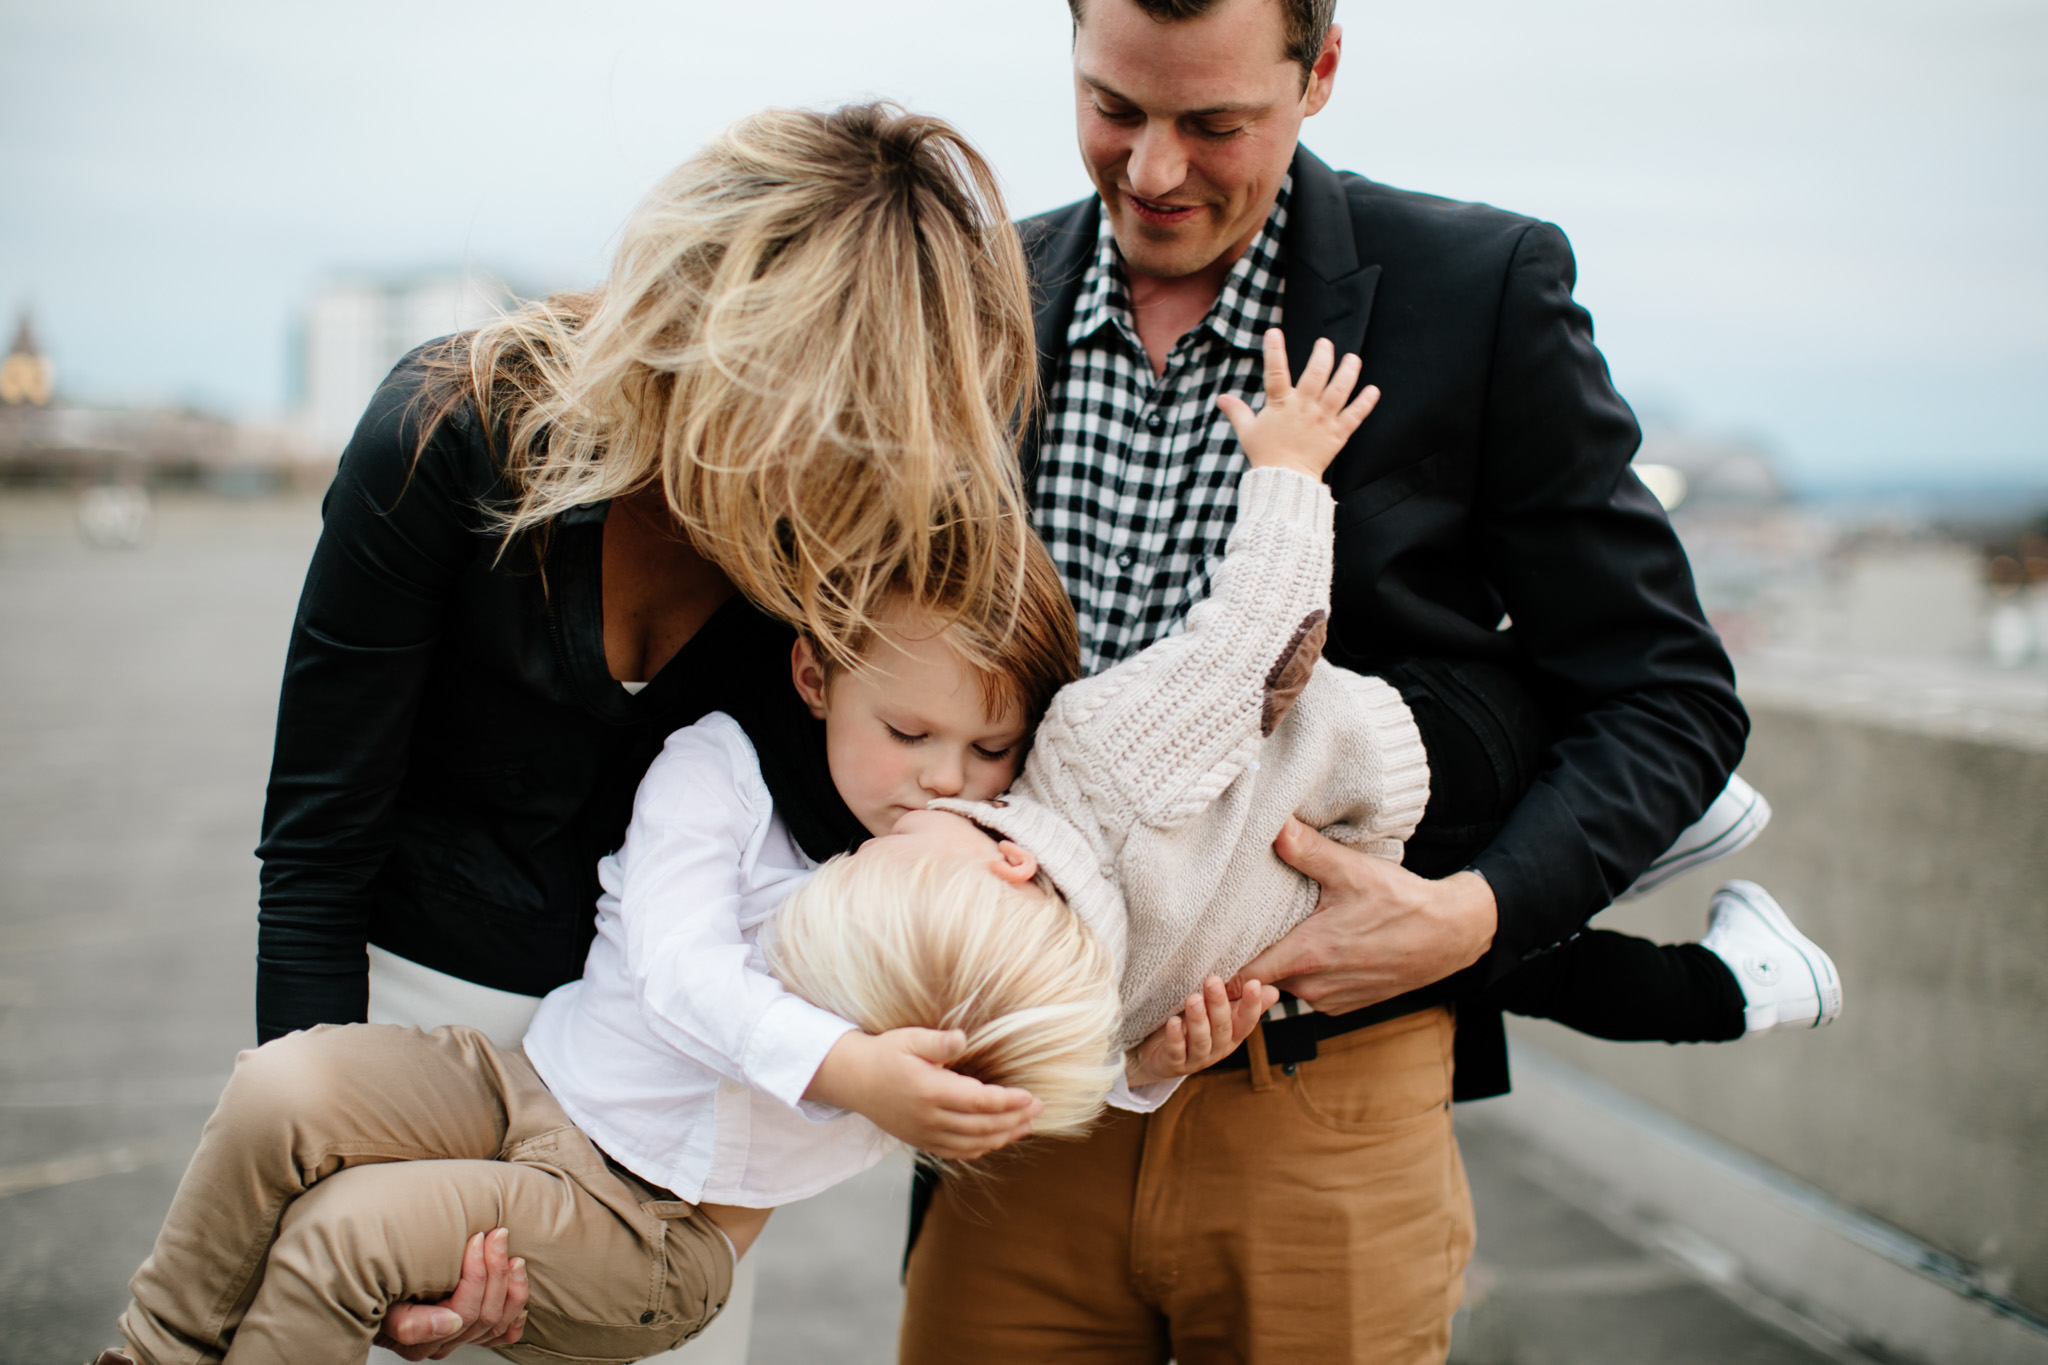 30seattle-family-photographer-catie-bergman-photography-pnw-newborn-portrait-lifestylephotography.jpg